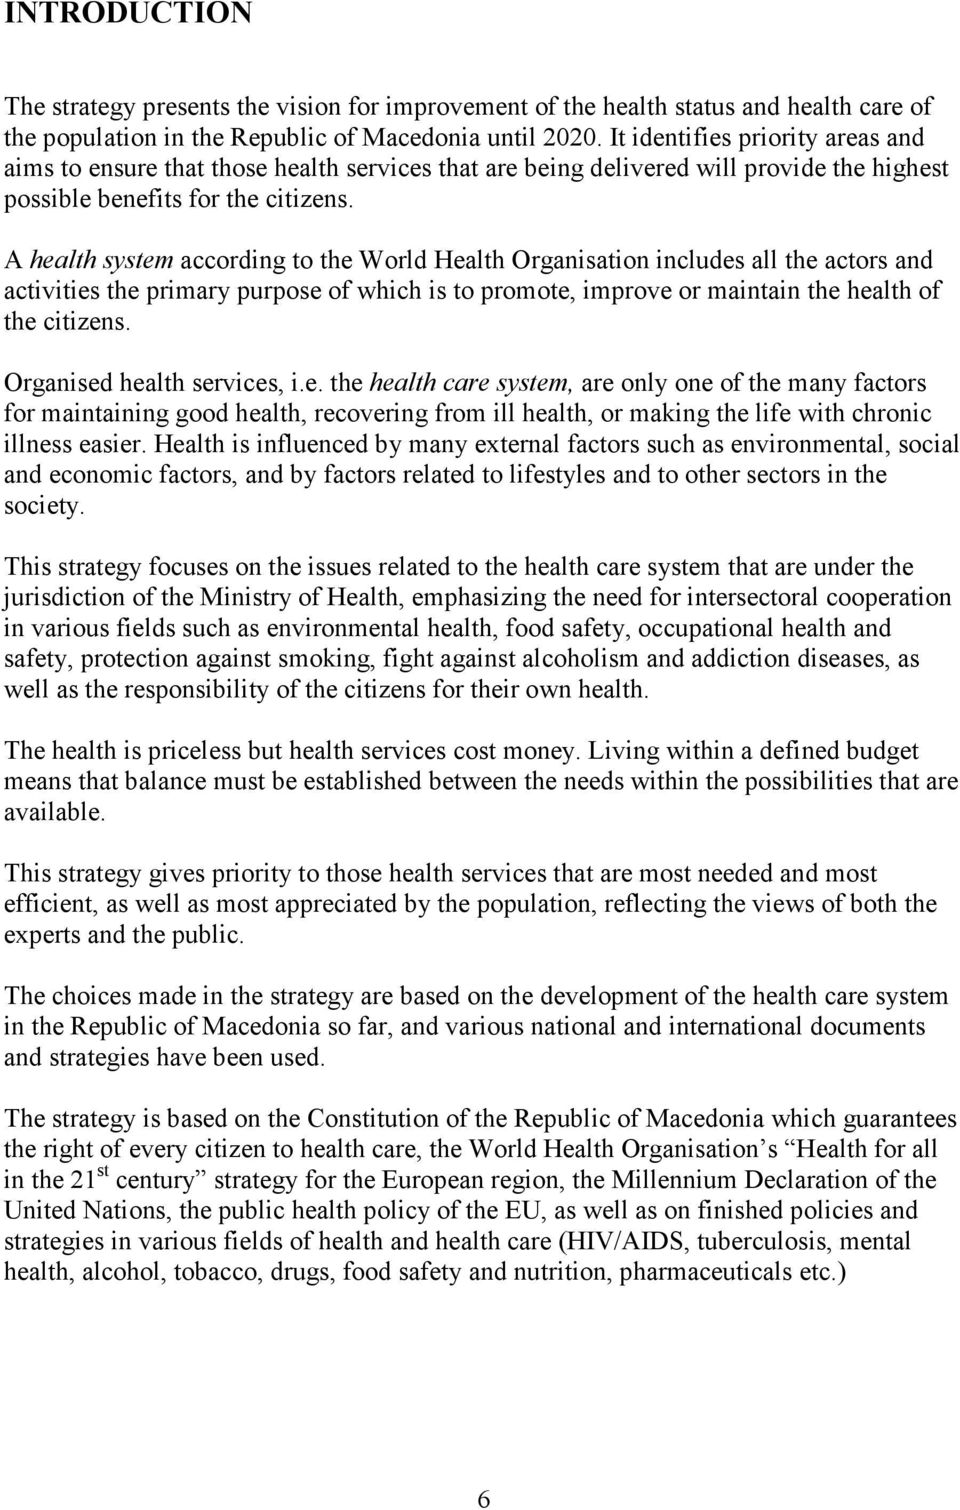 A health system according to the World Health Organisation includes all the actors and activities the primary purpose of which is to promote, improve or maintain the health of the citizens.